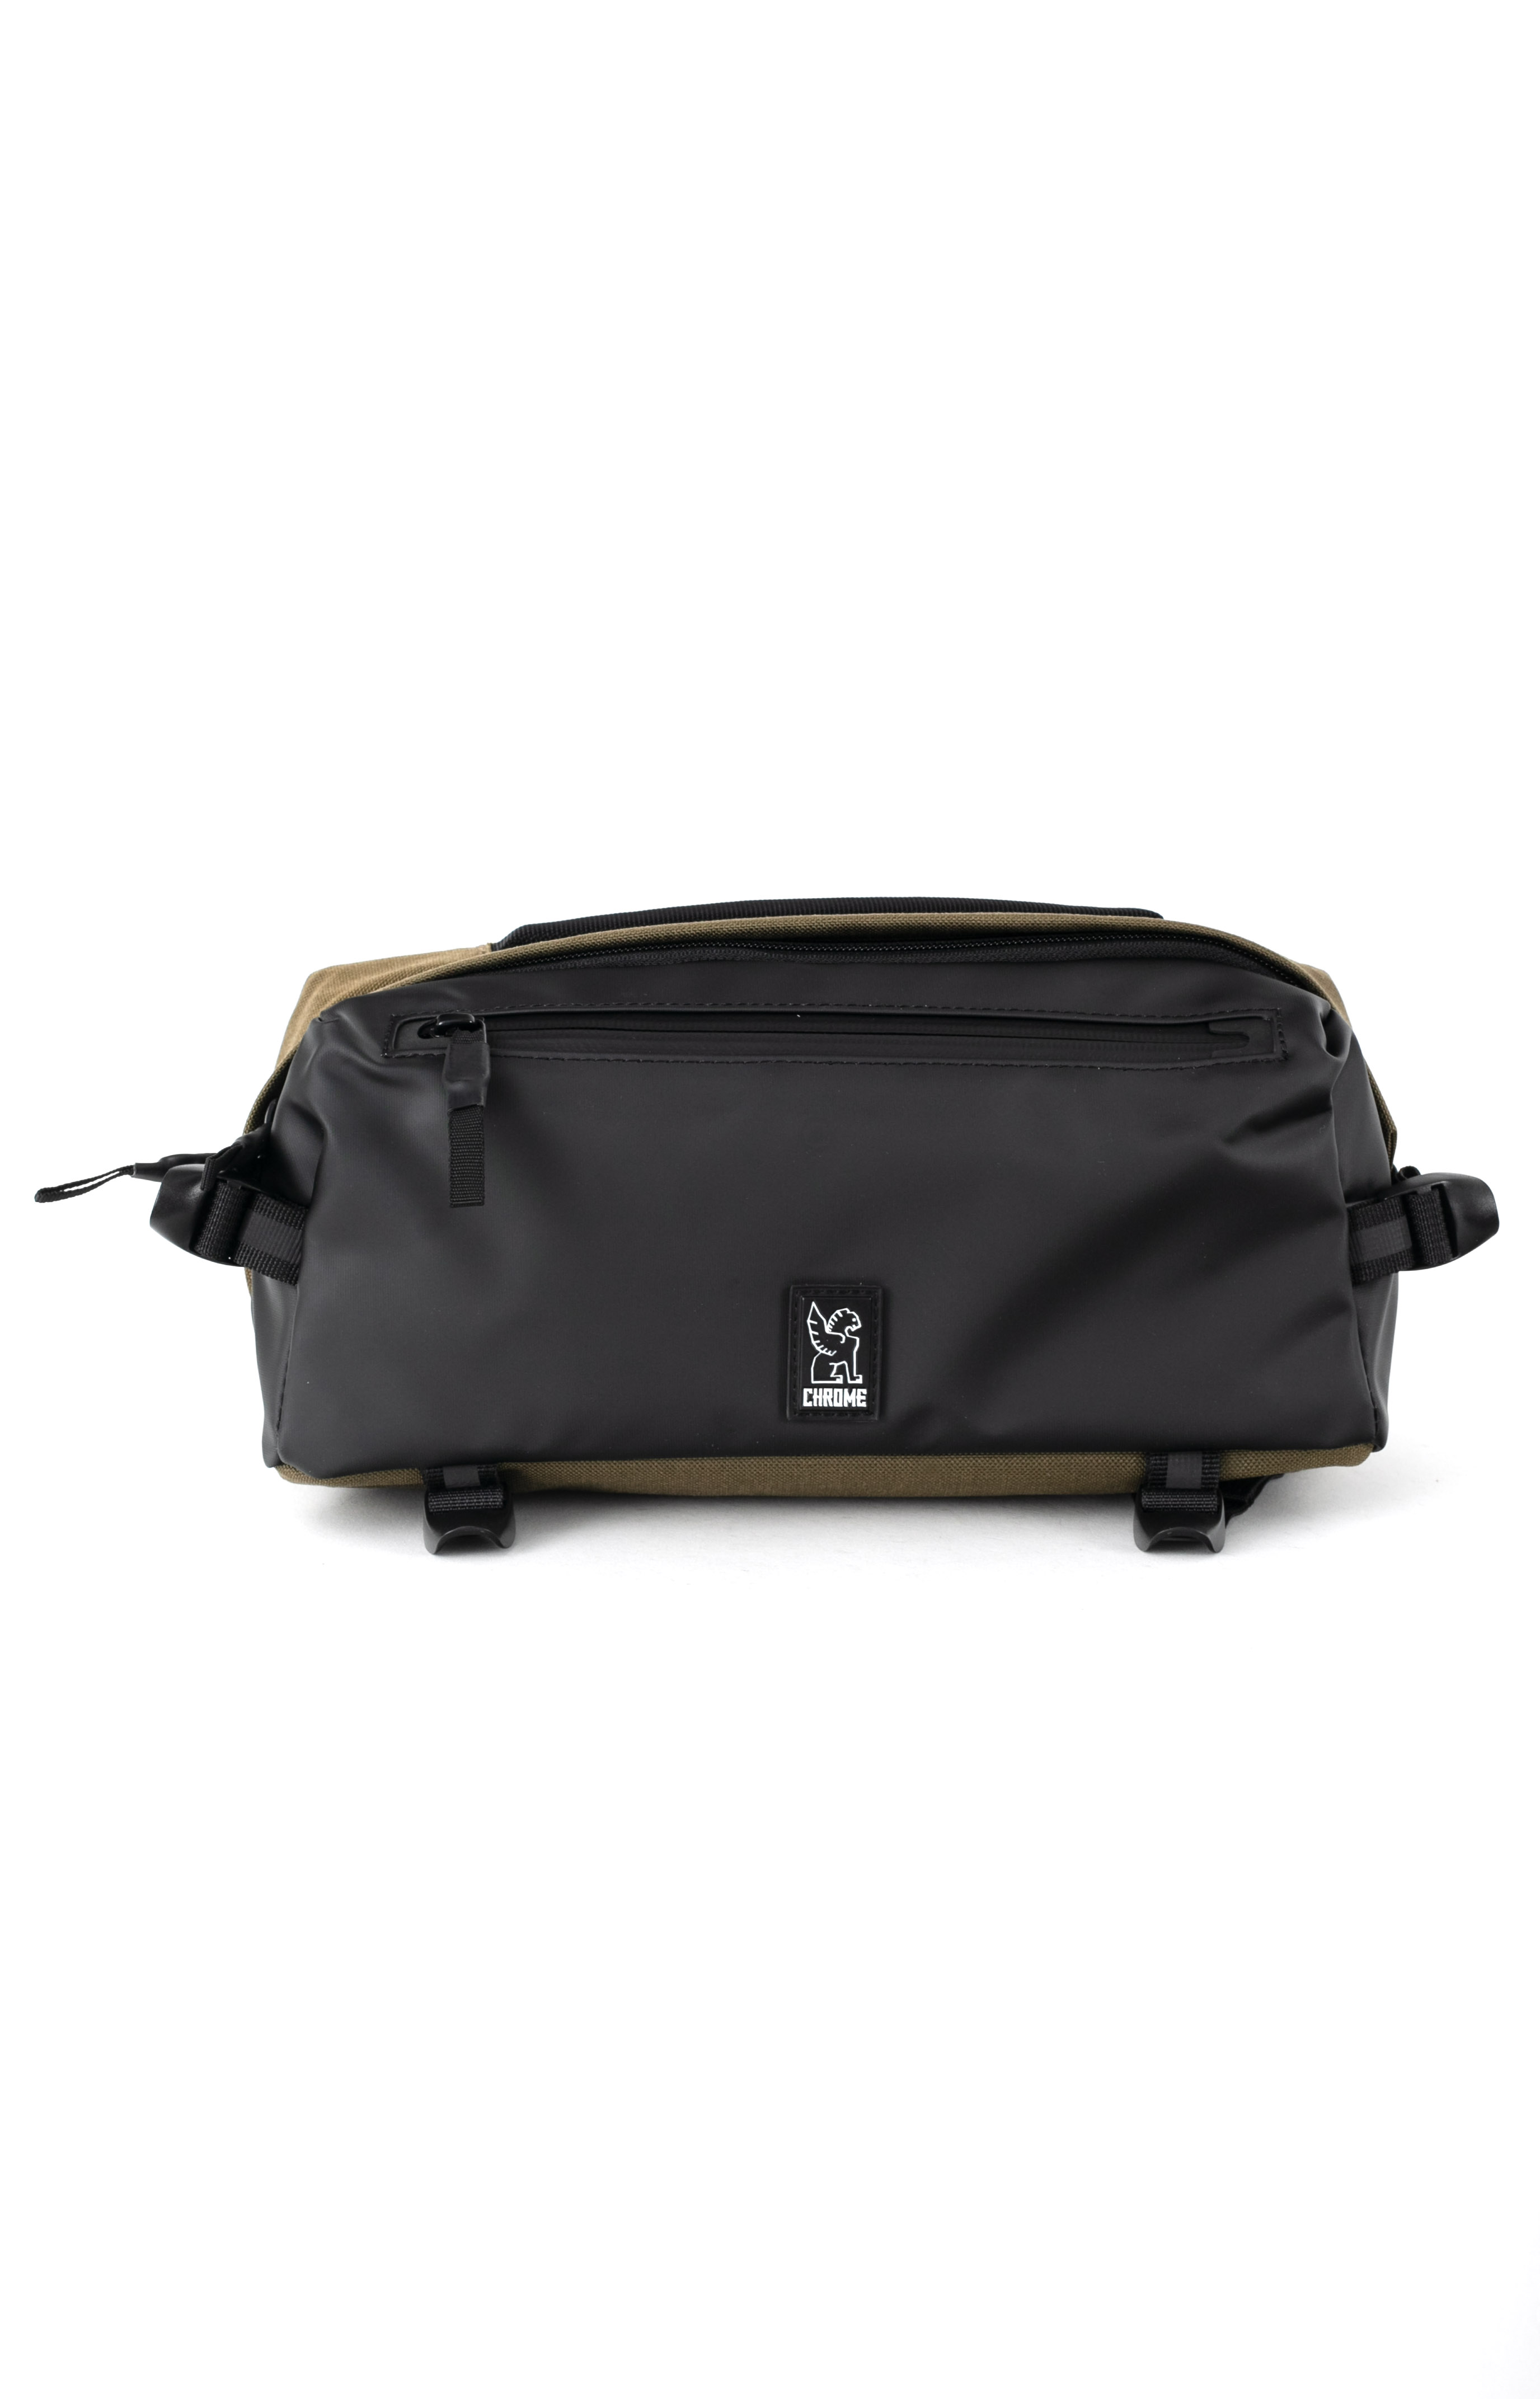 Kovac Sling Bag - Ranger/Black